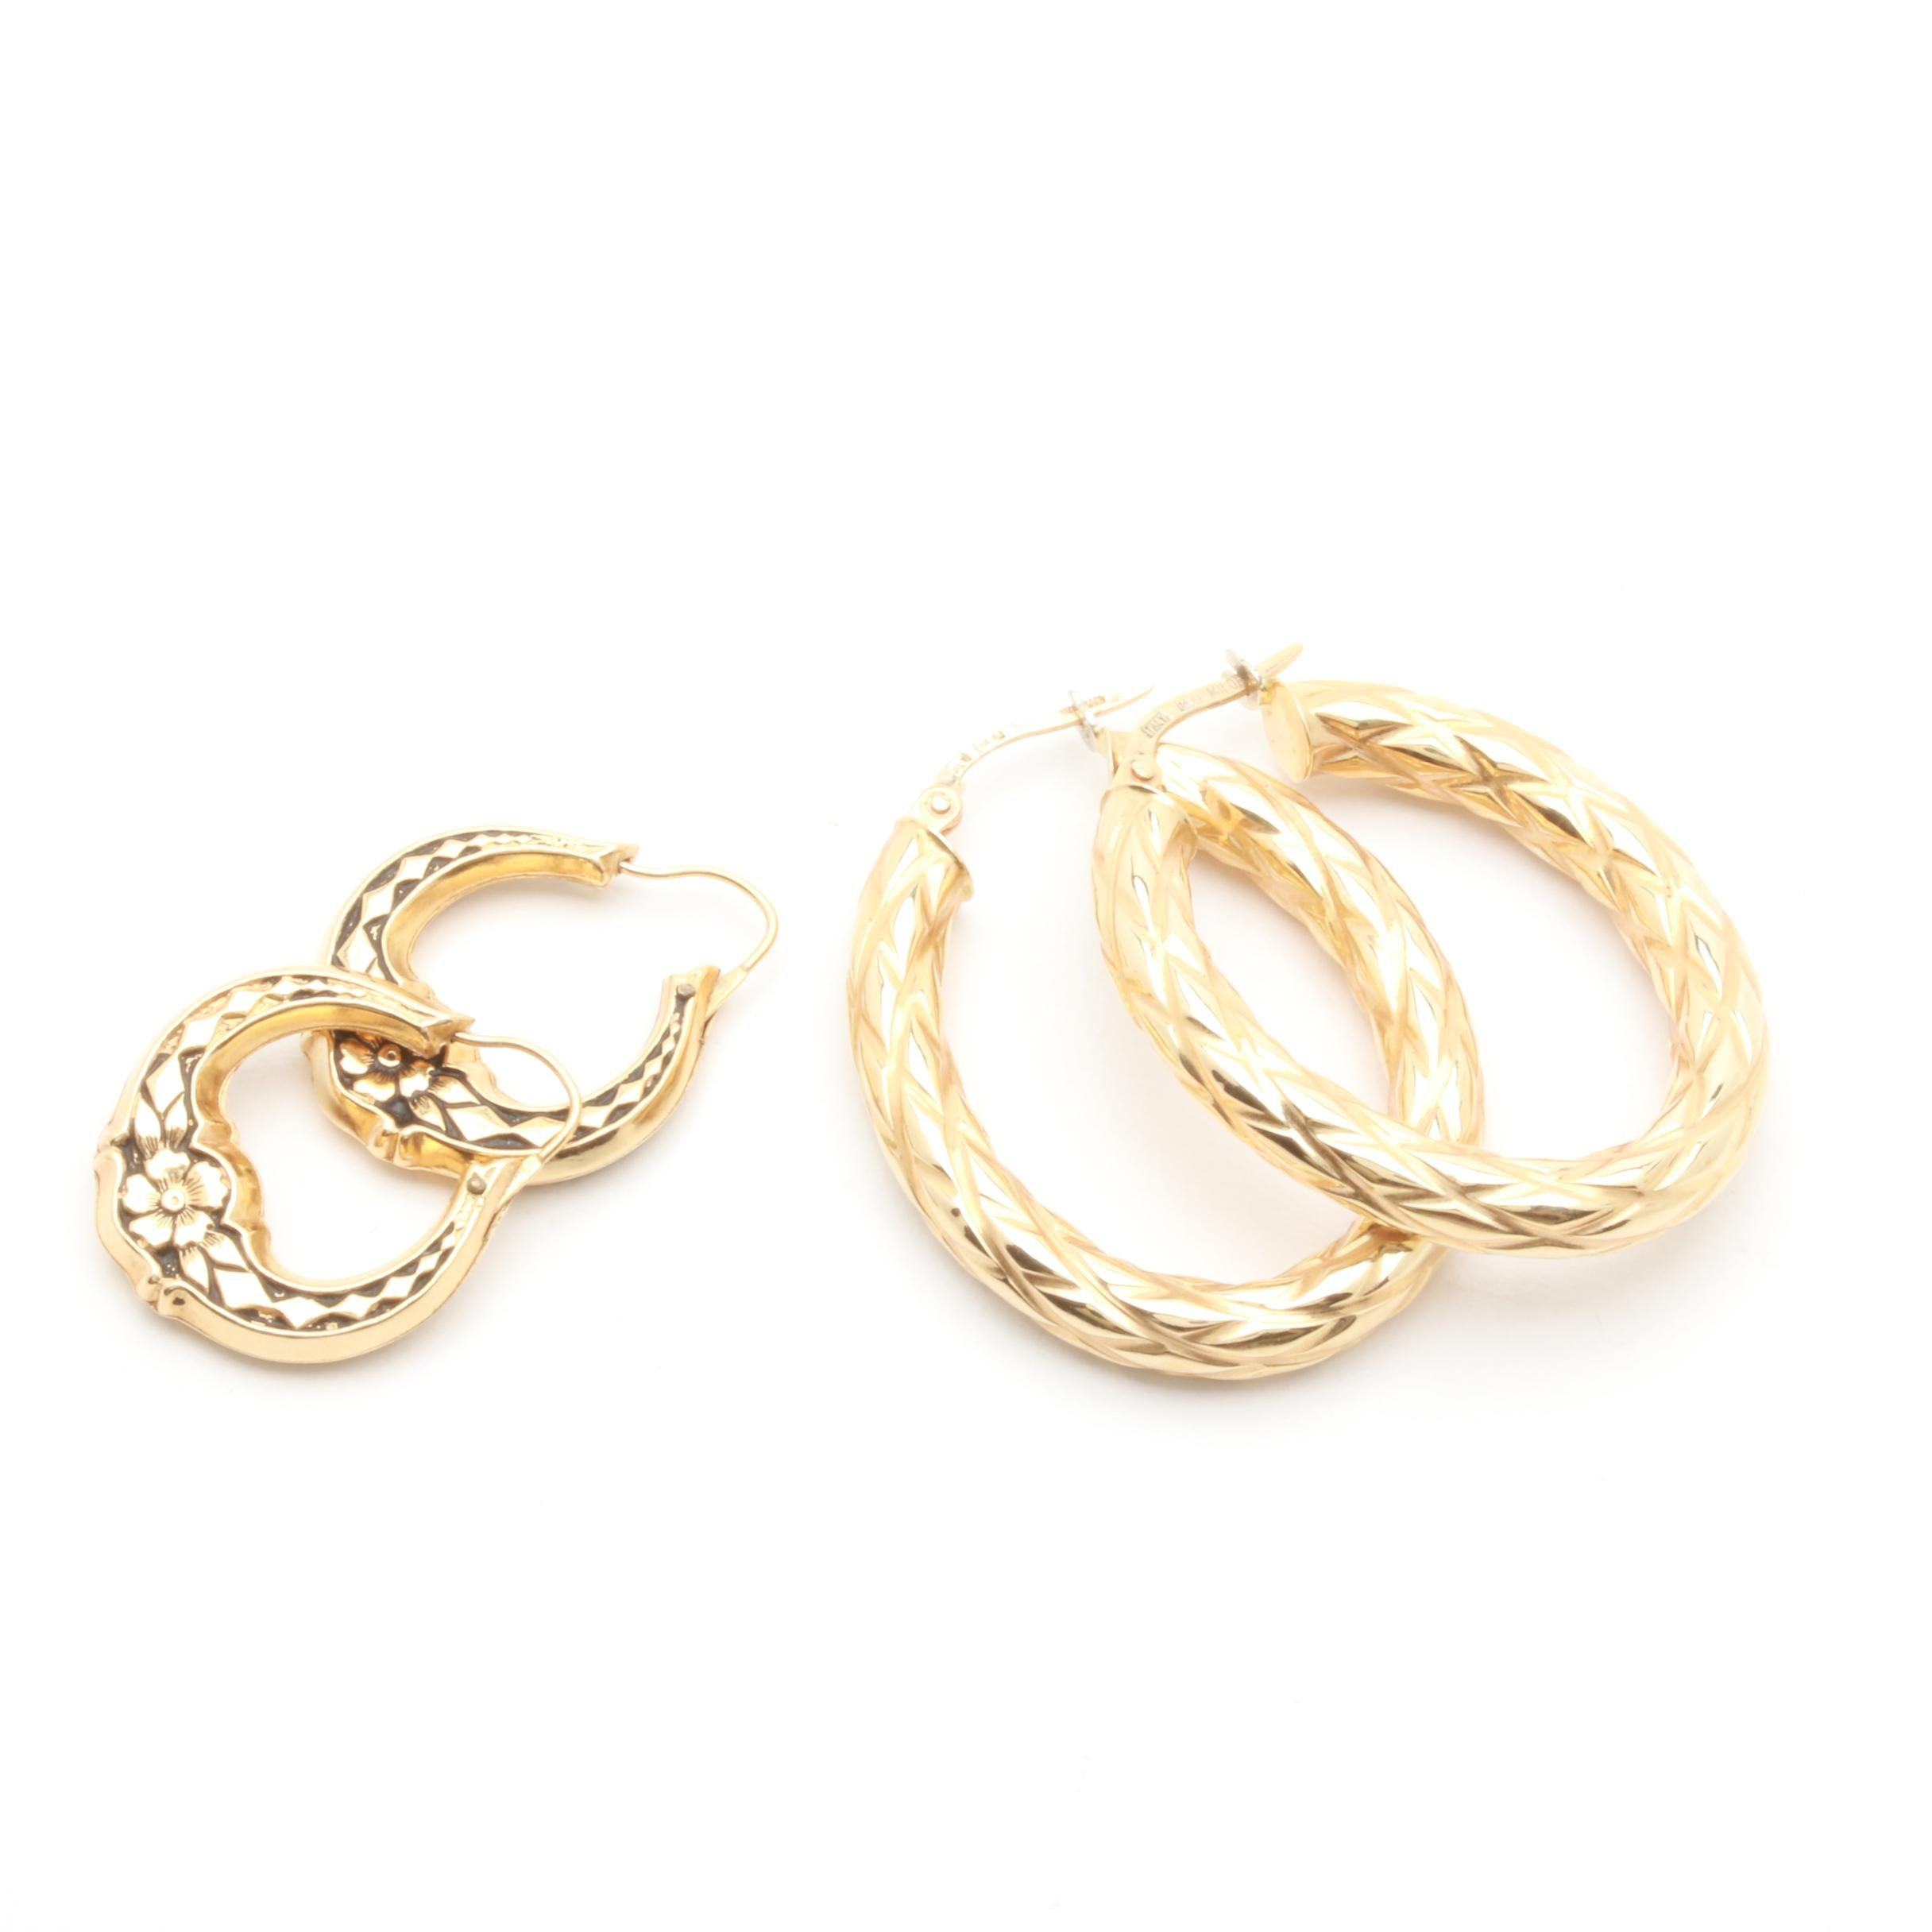 14K Yellow Gold Textured Hoop Selection Featuring Milor